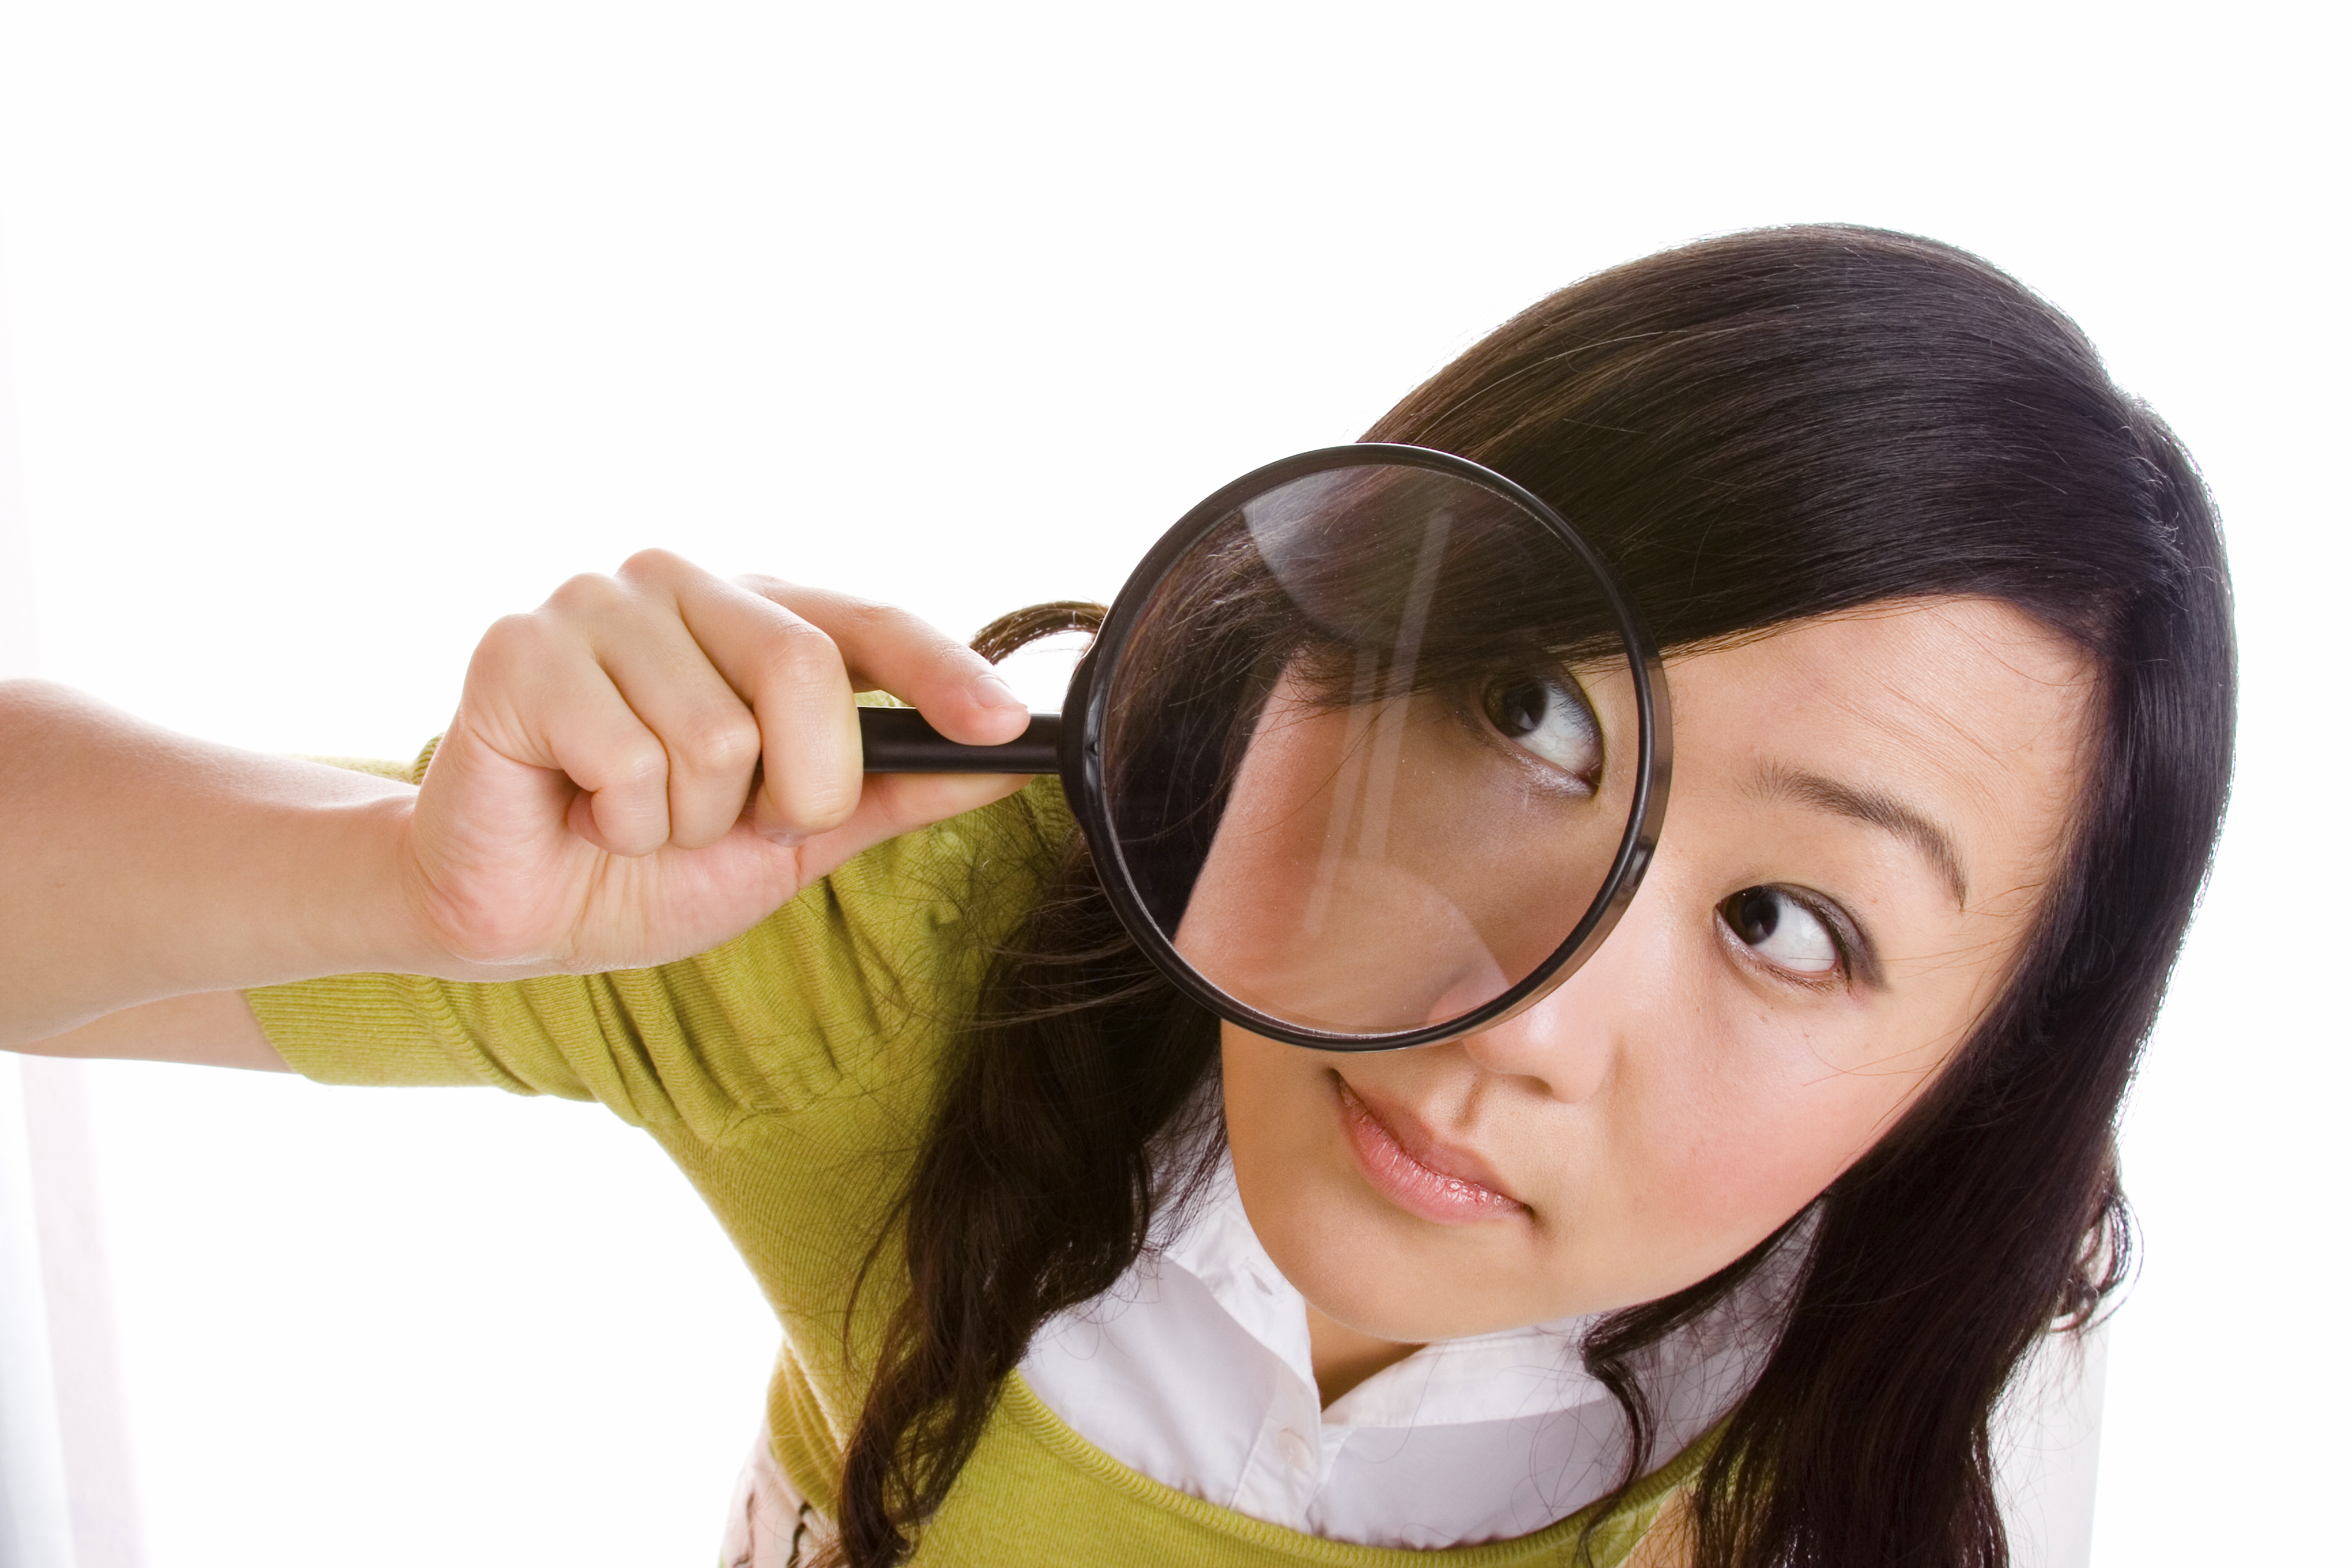 16_38_08_657_girl_looking_through_magnifying_glass